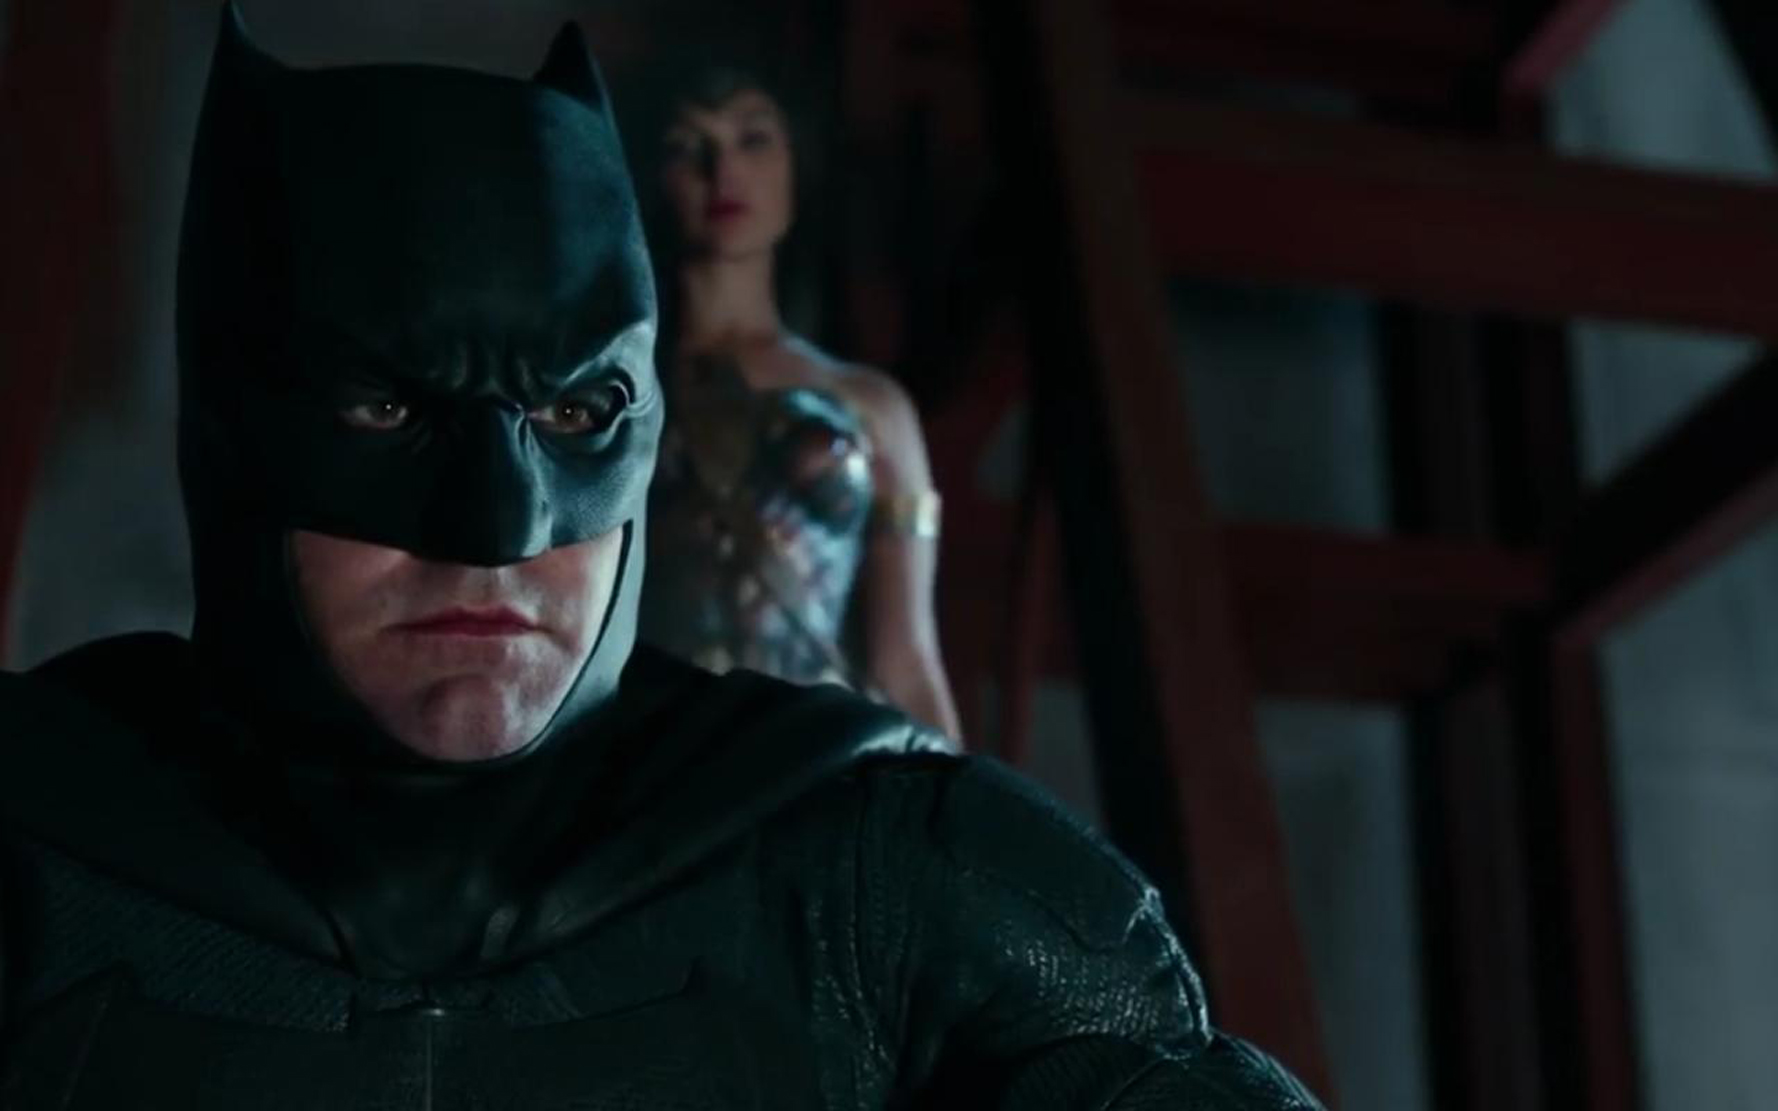 Batman and Wonder Woman seek the help of other superheroes, following the death of Superman